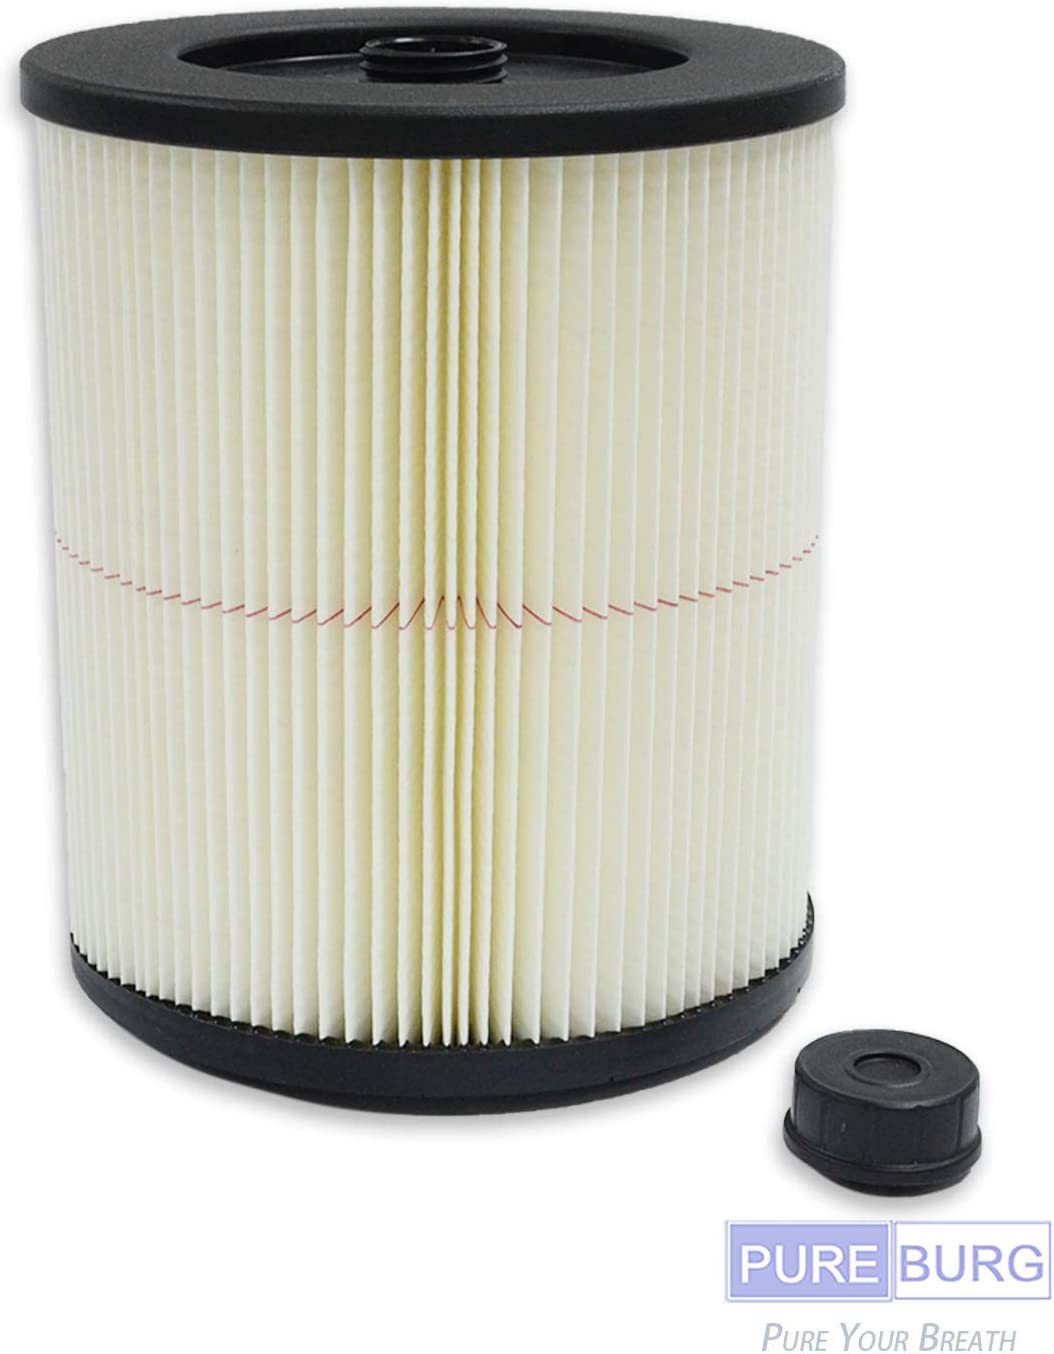 PUREBURG 1-Pack Replacement Red-Stripe Filter for Craftsman Fits 5/6/8/12/16/32 Gallon Large Wet Dry Shop Vacs Replace Part# 9-17816